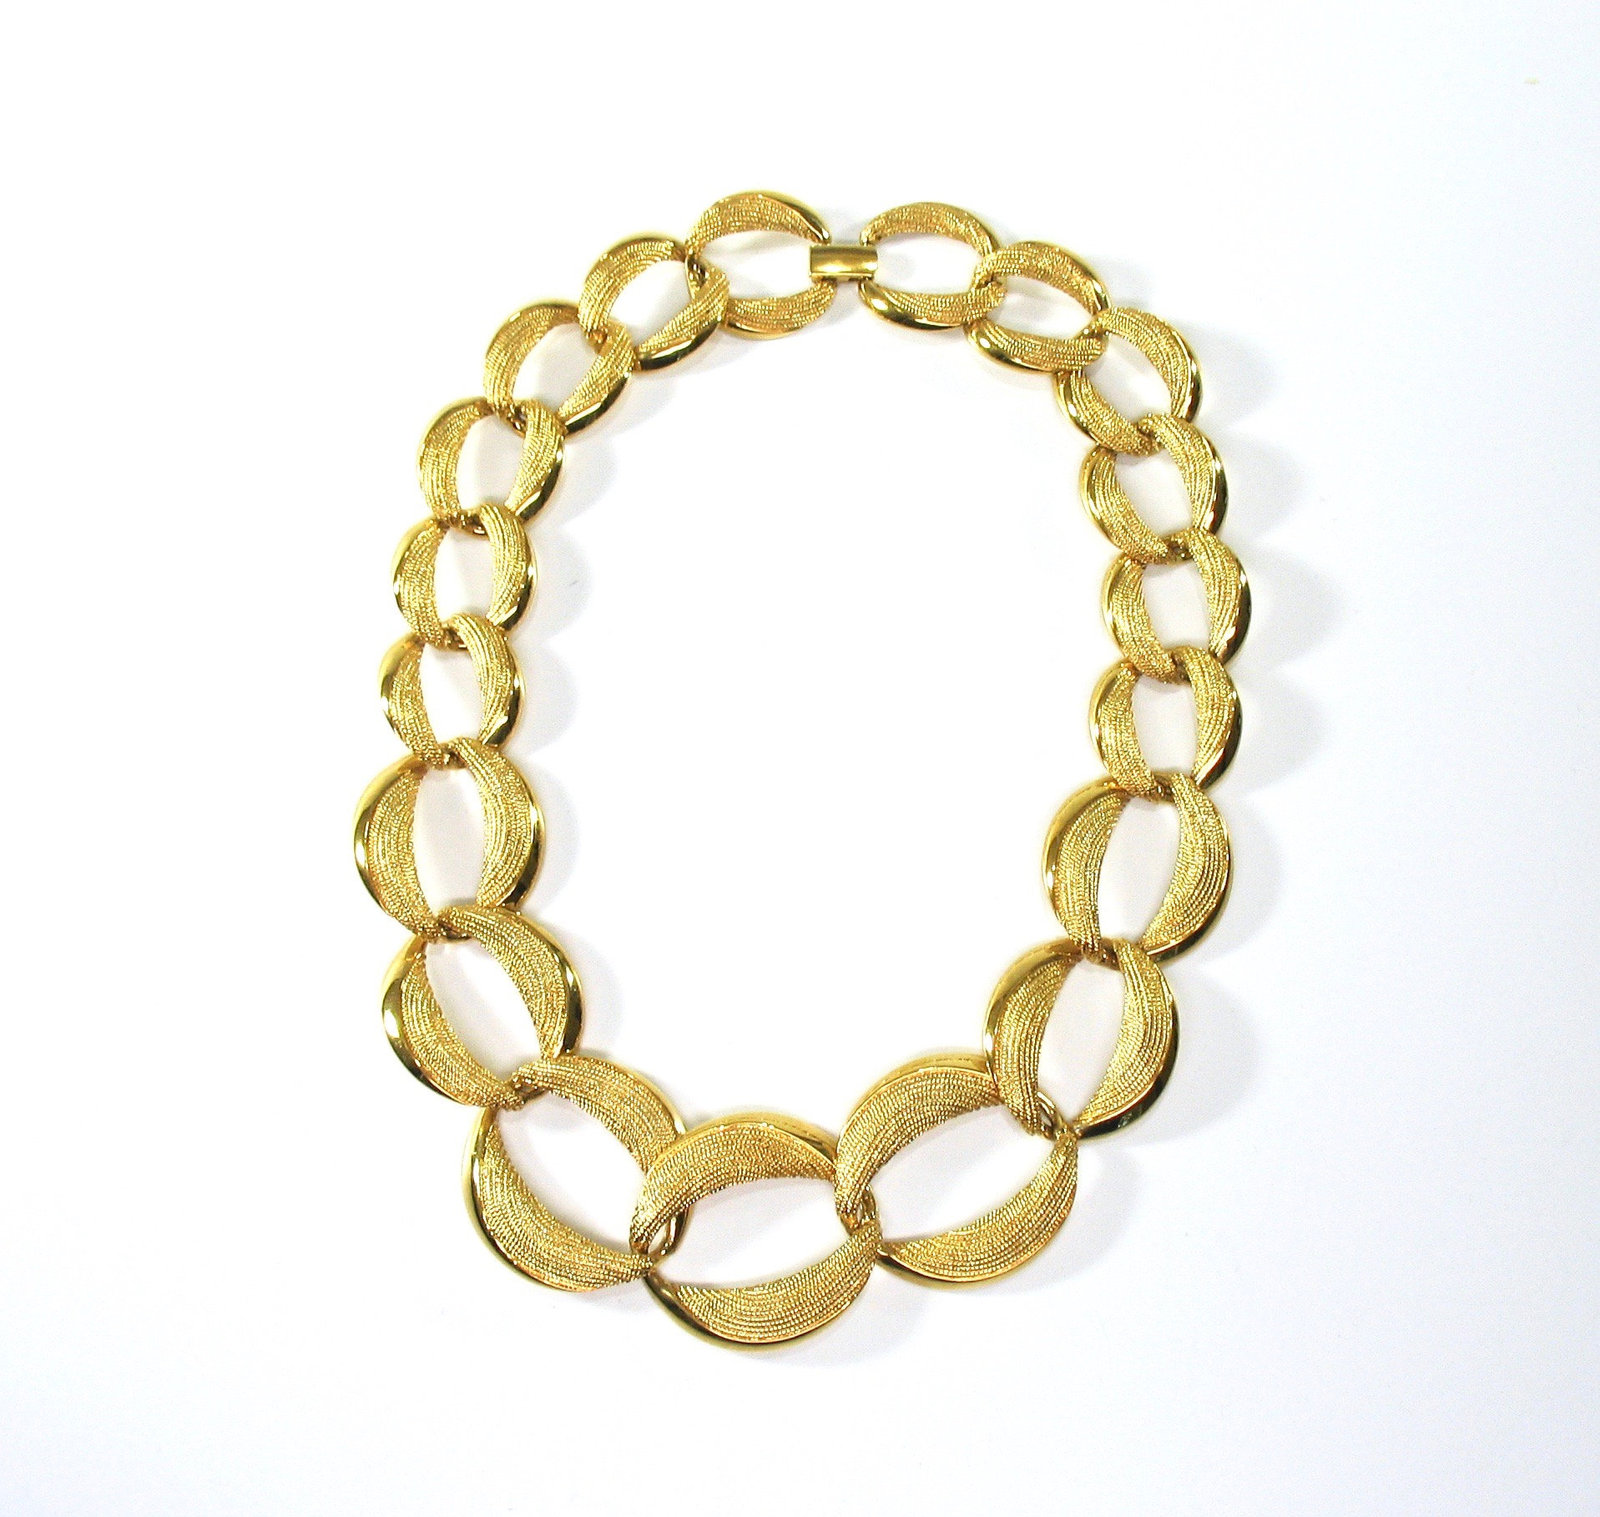 NAPIER Large Chain Necklace, Pat. 4 774 743, Heavy Links, Textured Gold Tone, 19